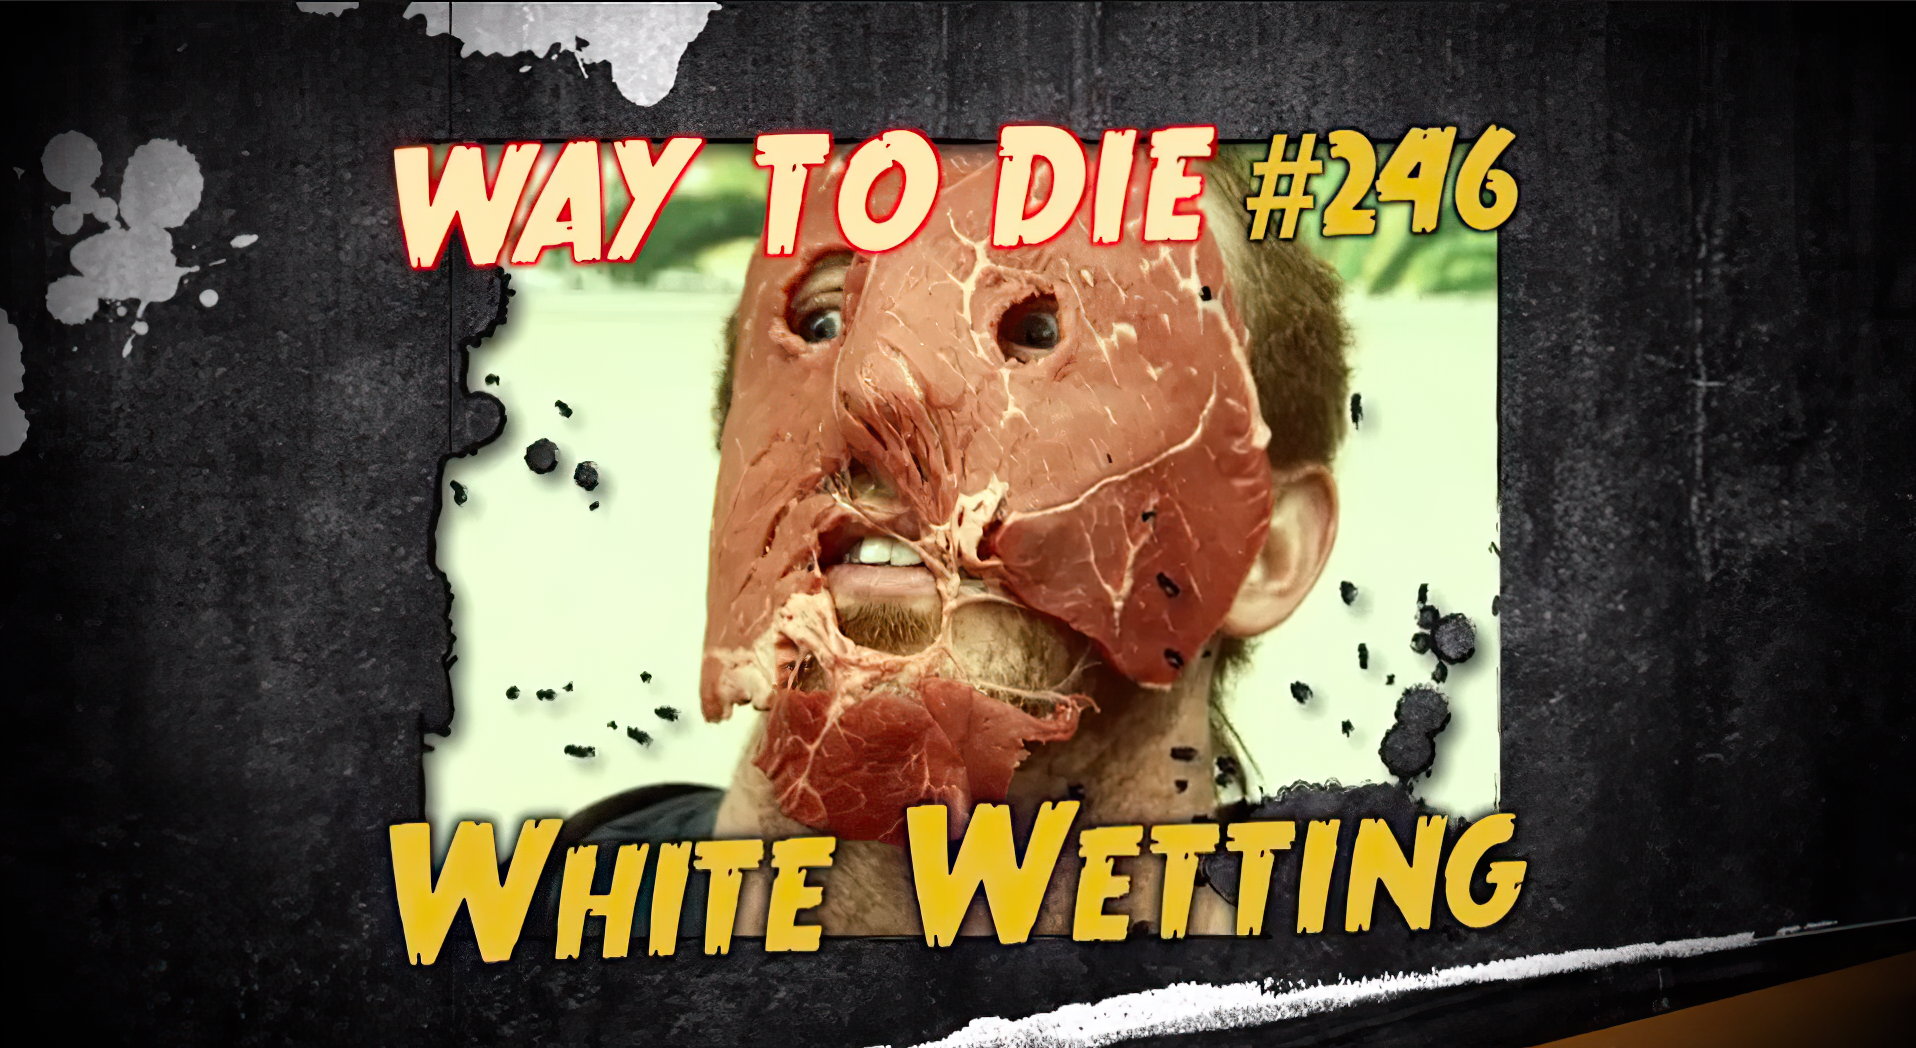 White Wetting